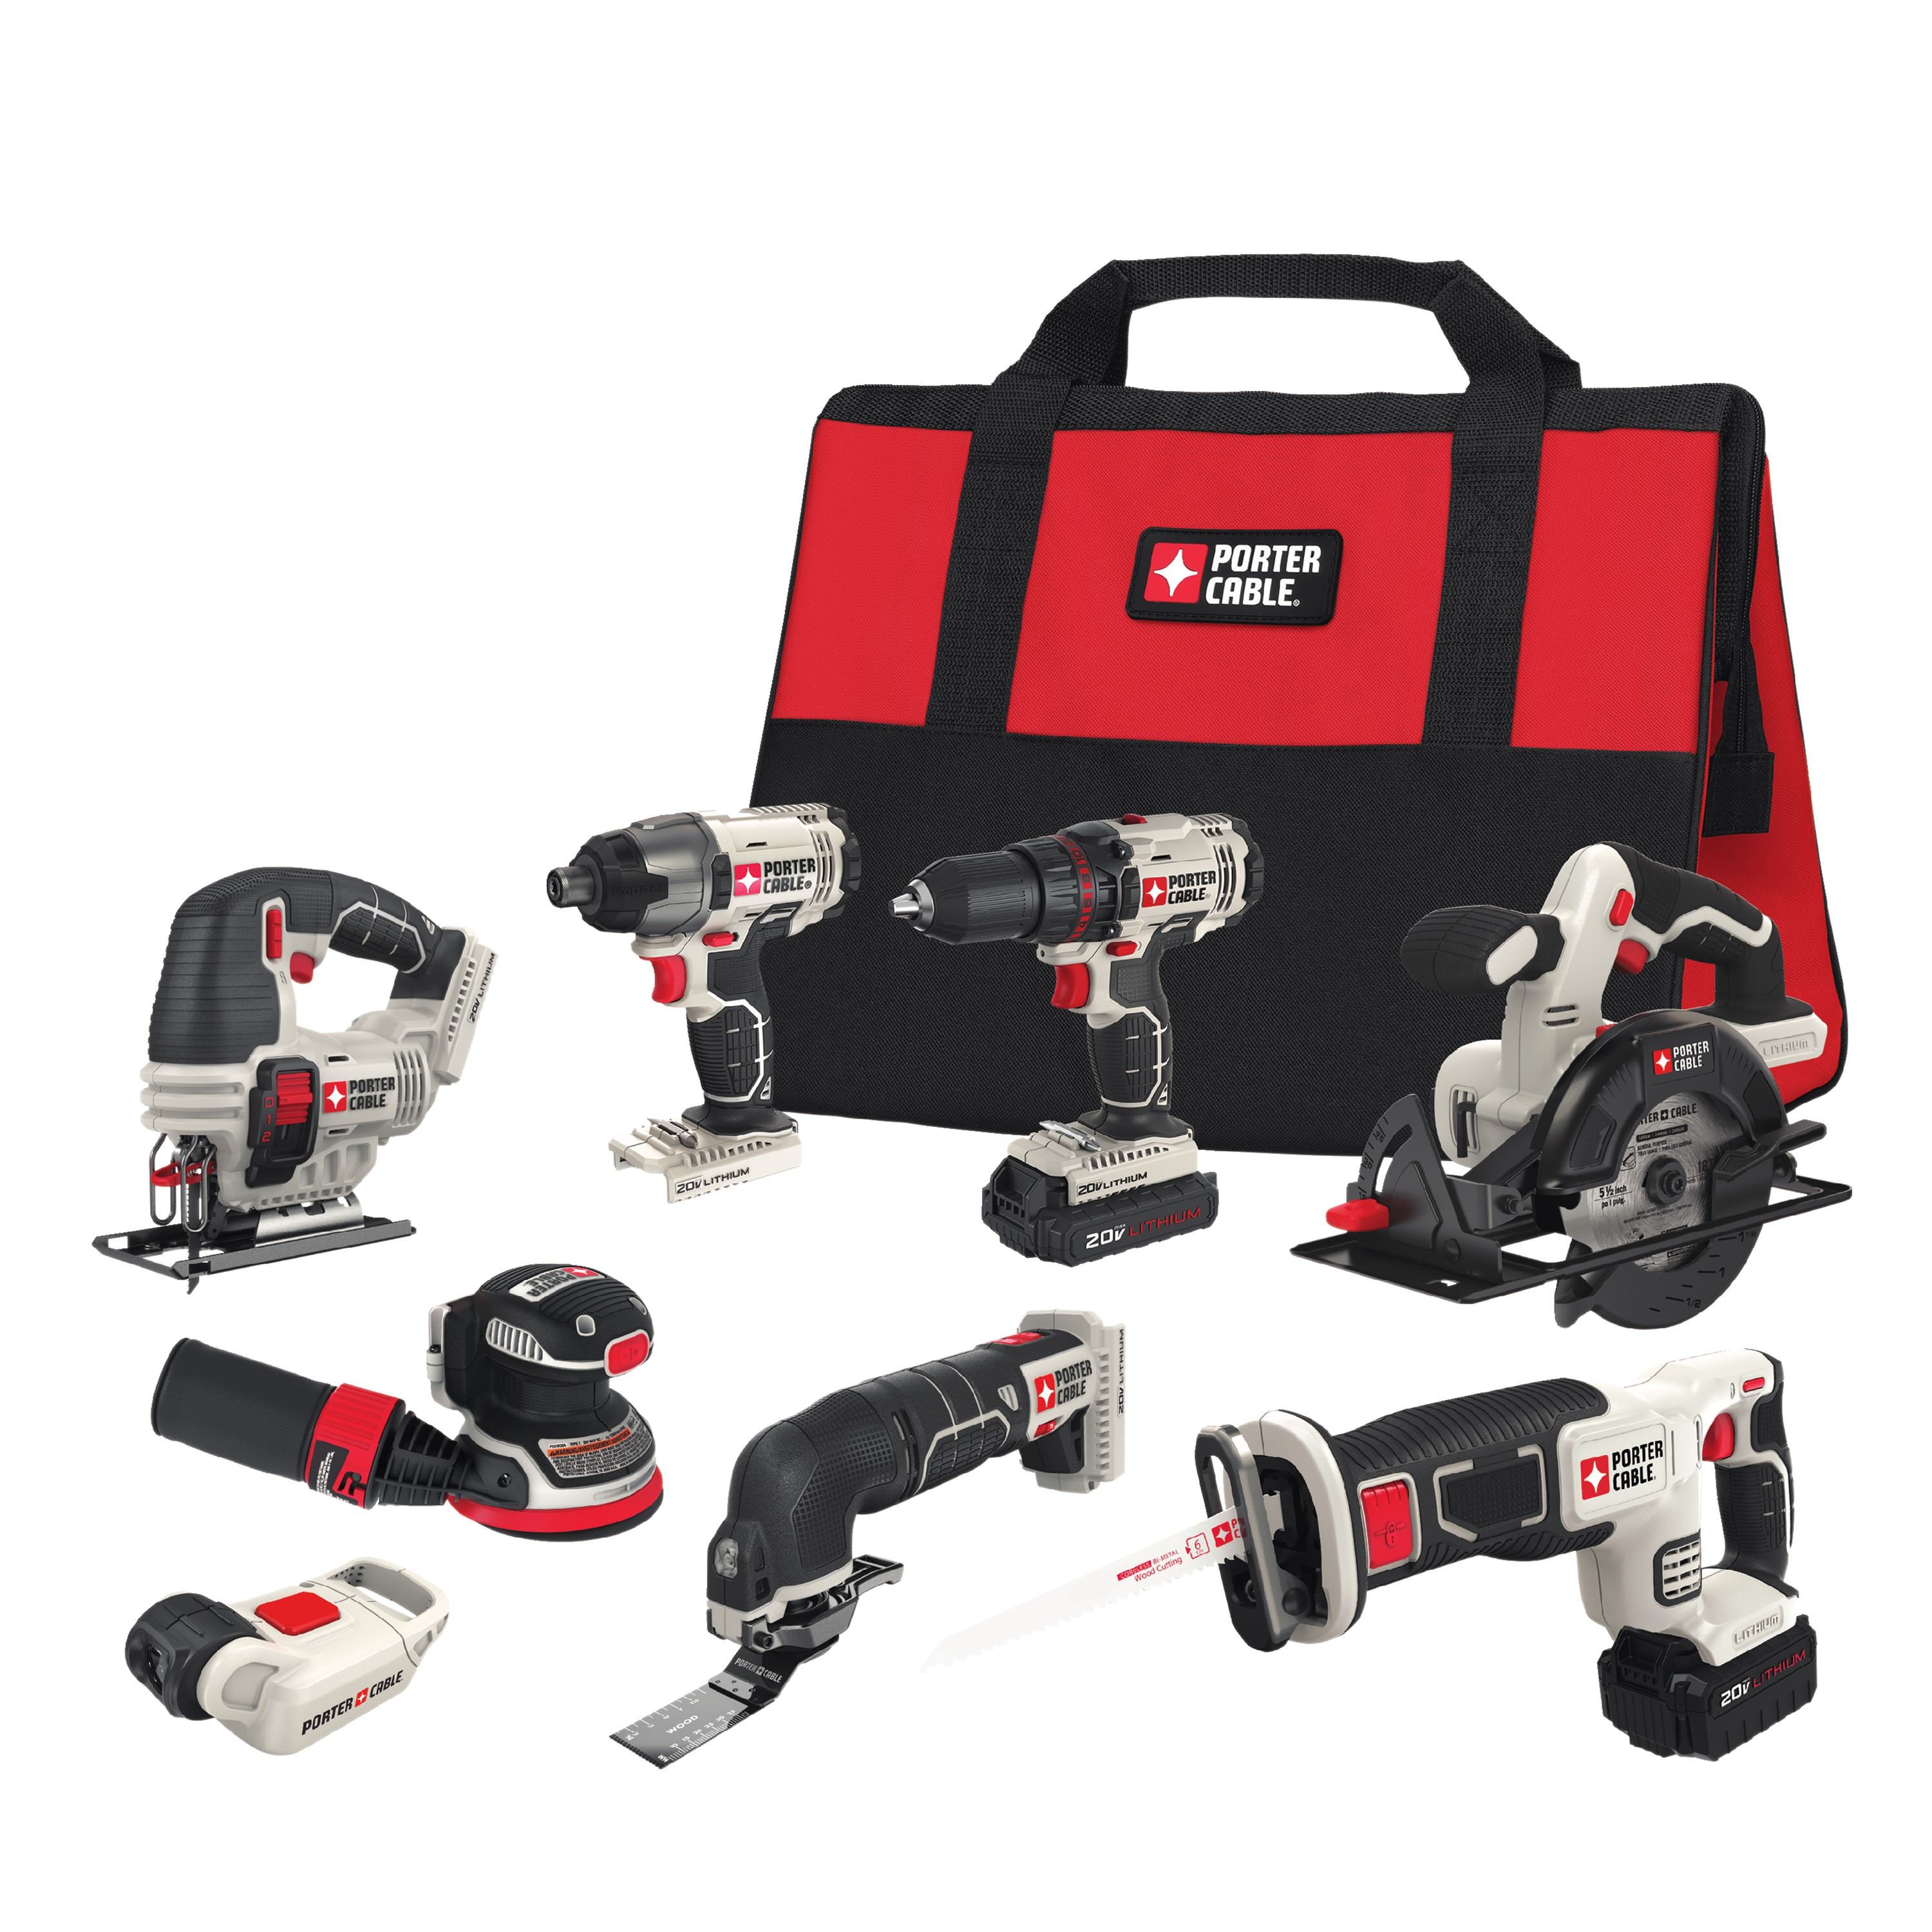 PORTER CABLE PCCK6118 20V MAX Lithium-Ion 8-Tool Combo Kit